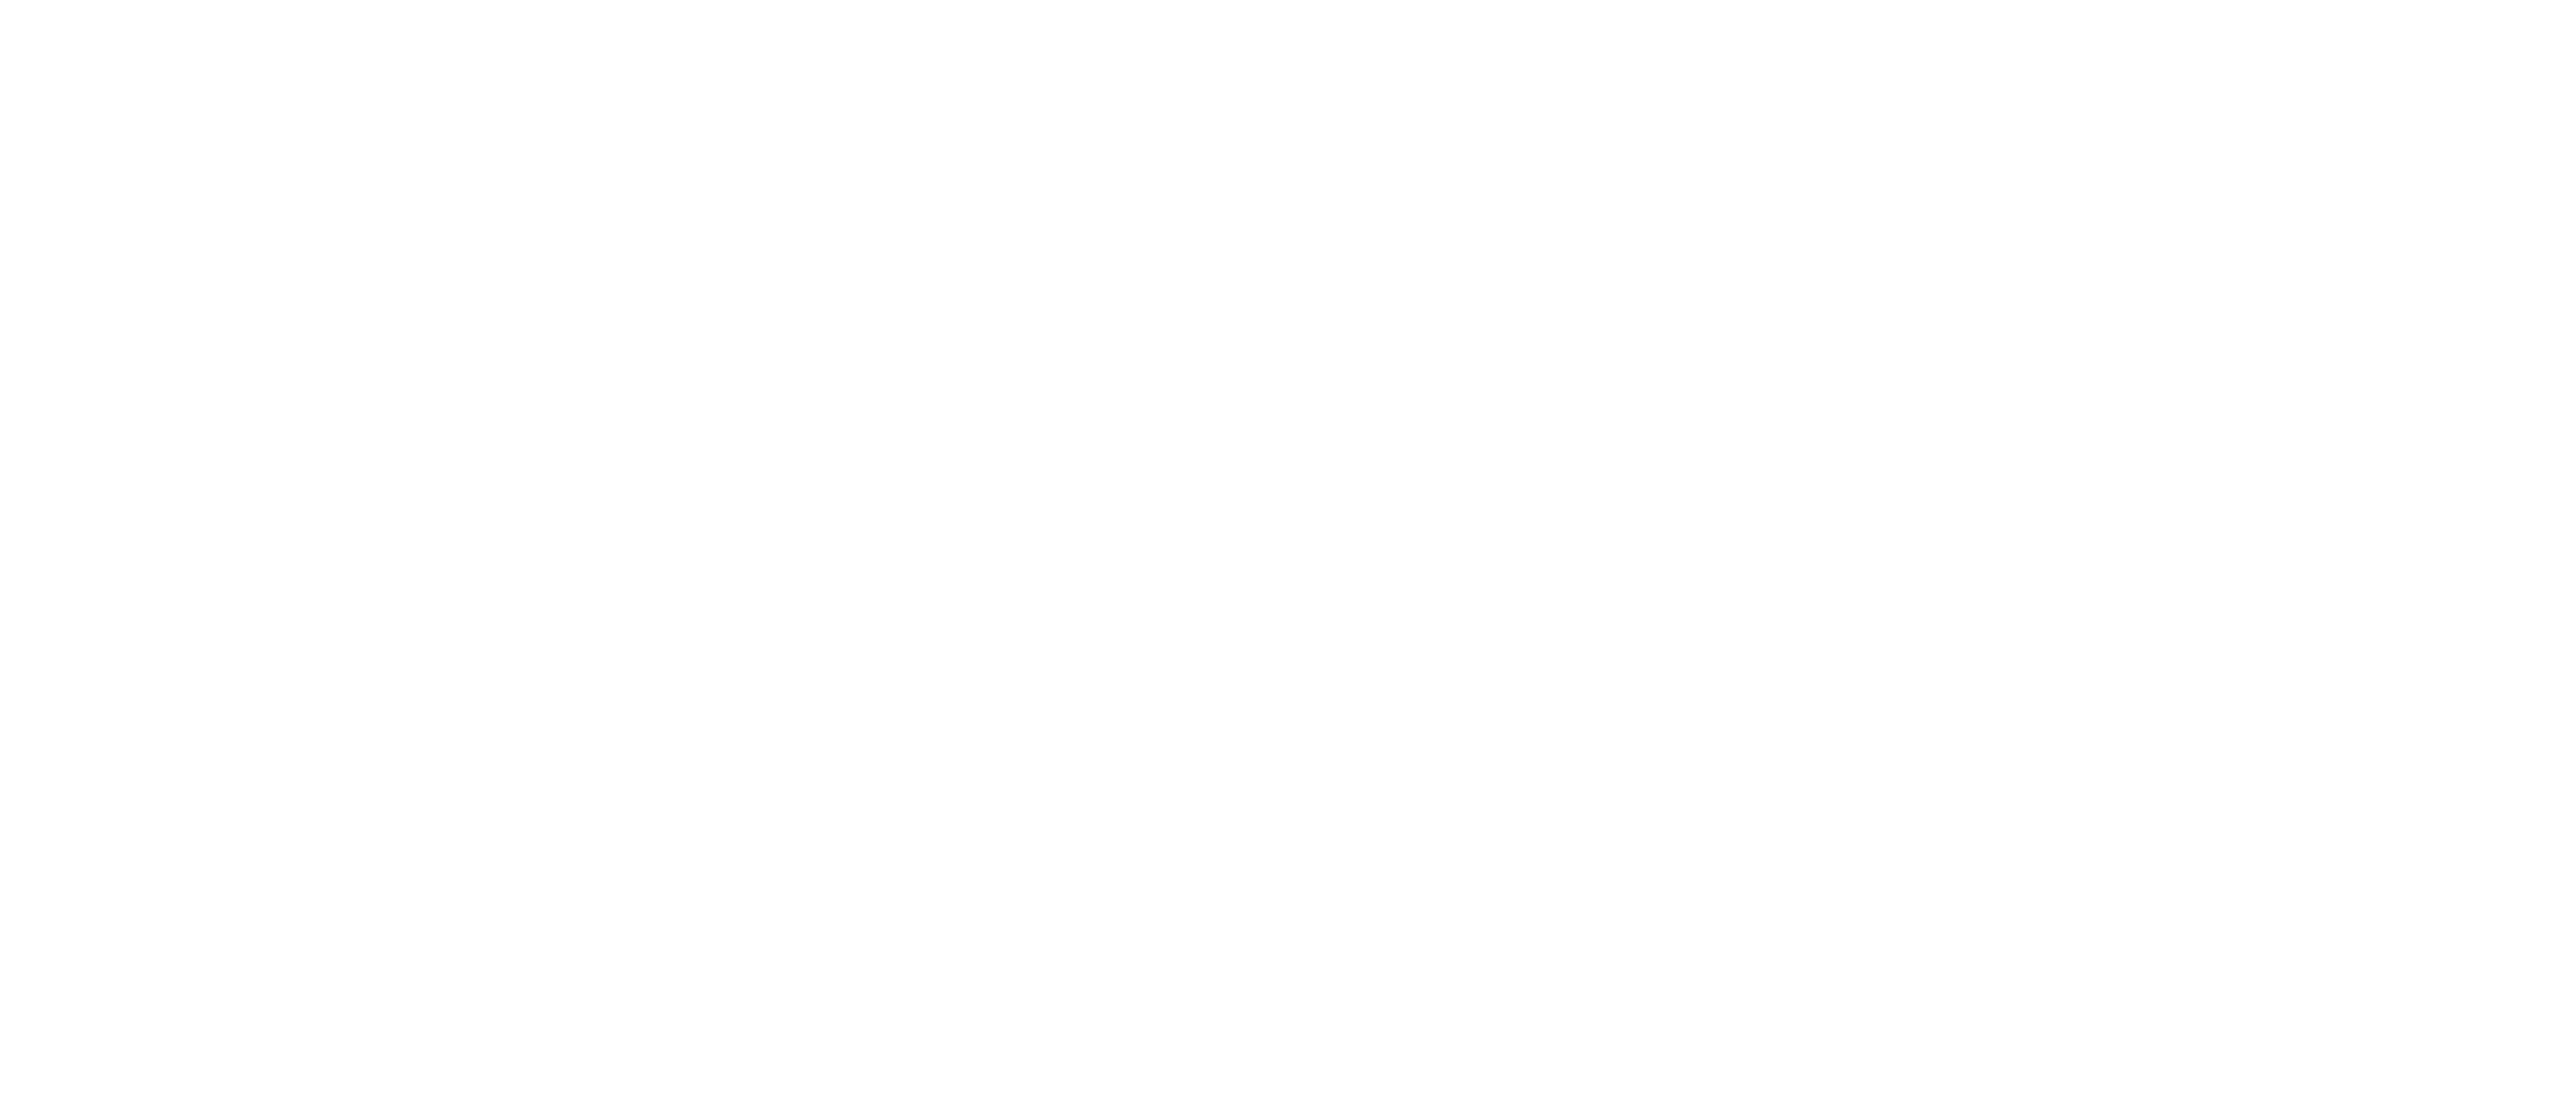 Chesapeake Conference